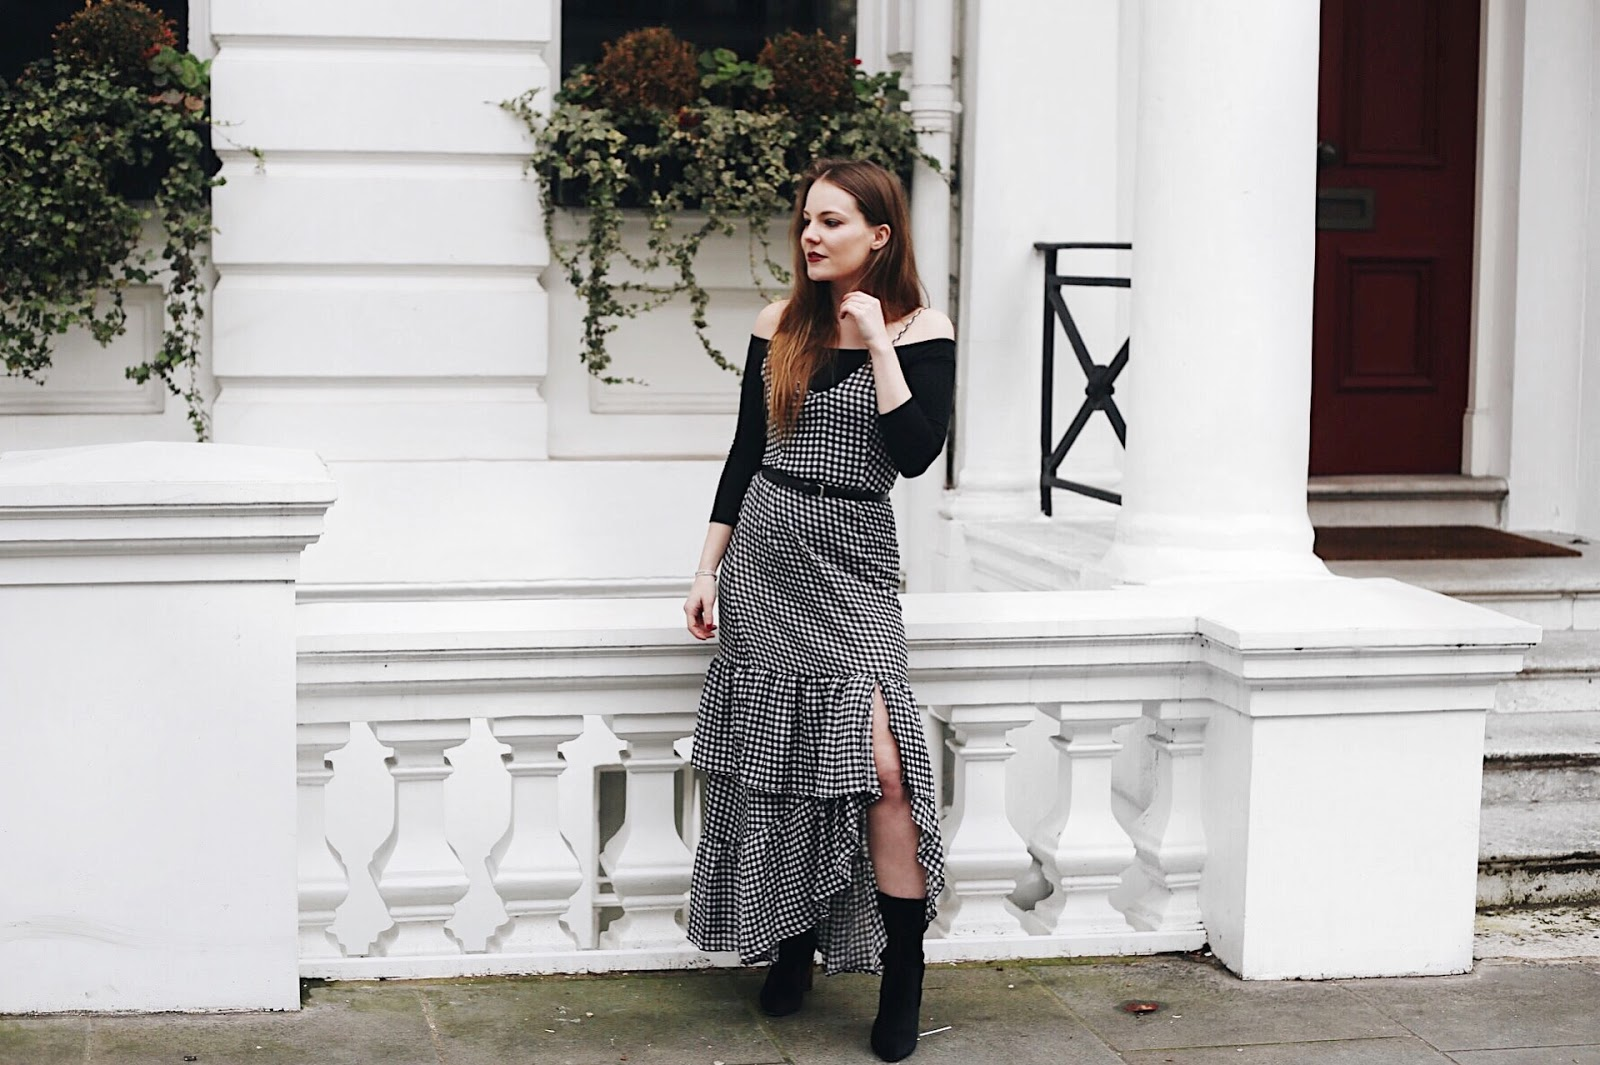 10 reasons why you should love your small breasts, small boobs, small breasted women, gingham dress, why i love small boobs, pretty little thing gingham dress, boohoo boots, chloe bag, chloe dupe bag, london style blogger, london based blogger